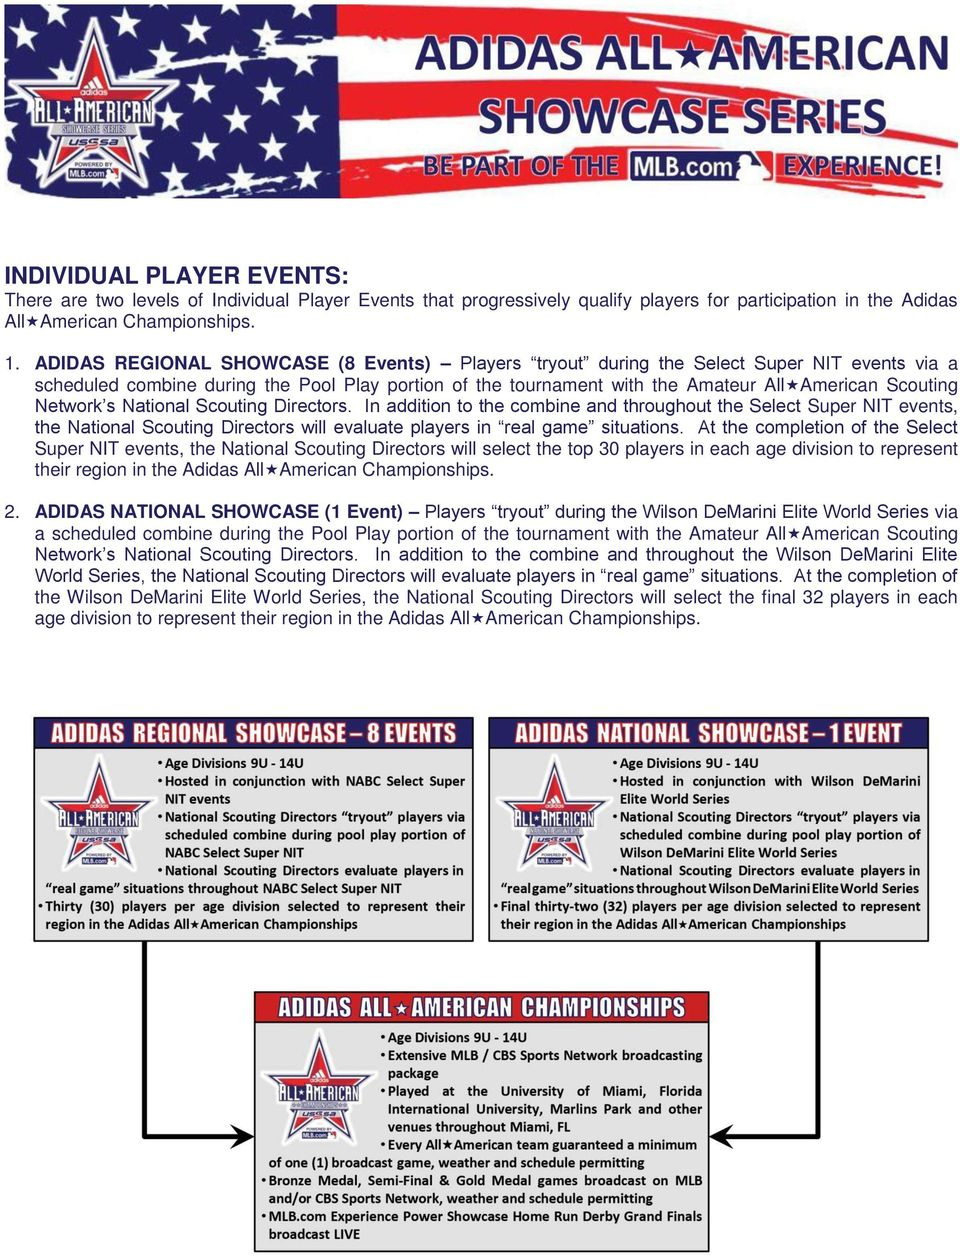 Network s National Scouting Directors. In addition to the combine and throughout the Select Super NIT events, the National Scouting Directors will evaluate players in real game situations.